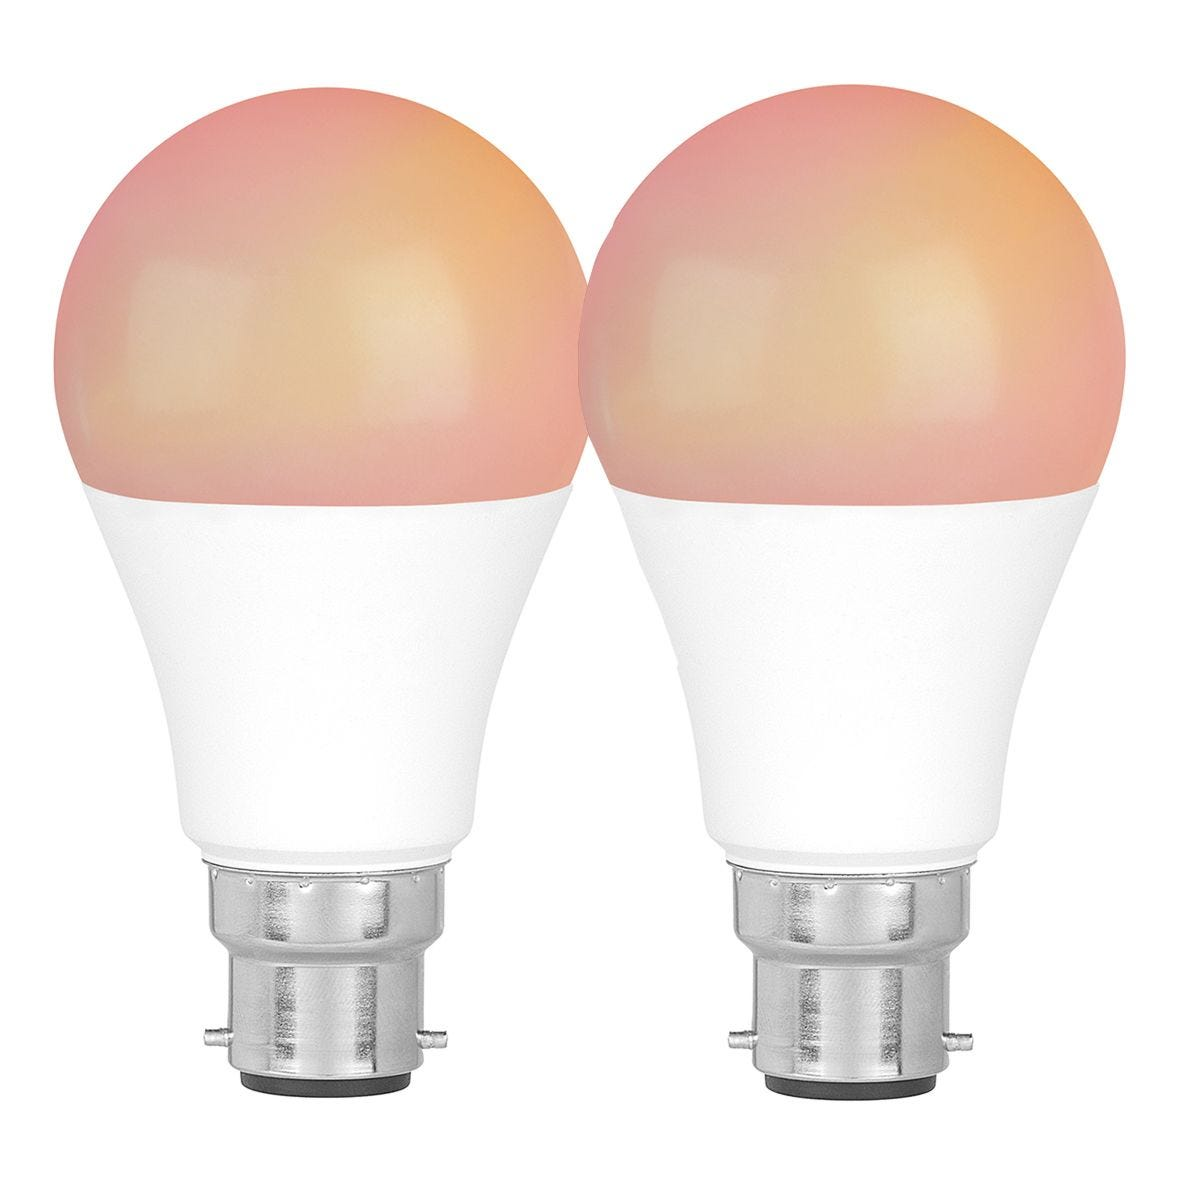 Intempo COMBO-6158 Smart Light Bulb with Bayonet Fitting 8.5 W Set of 2 - White and RGB Light Modes